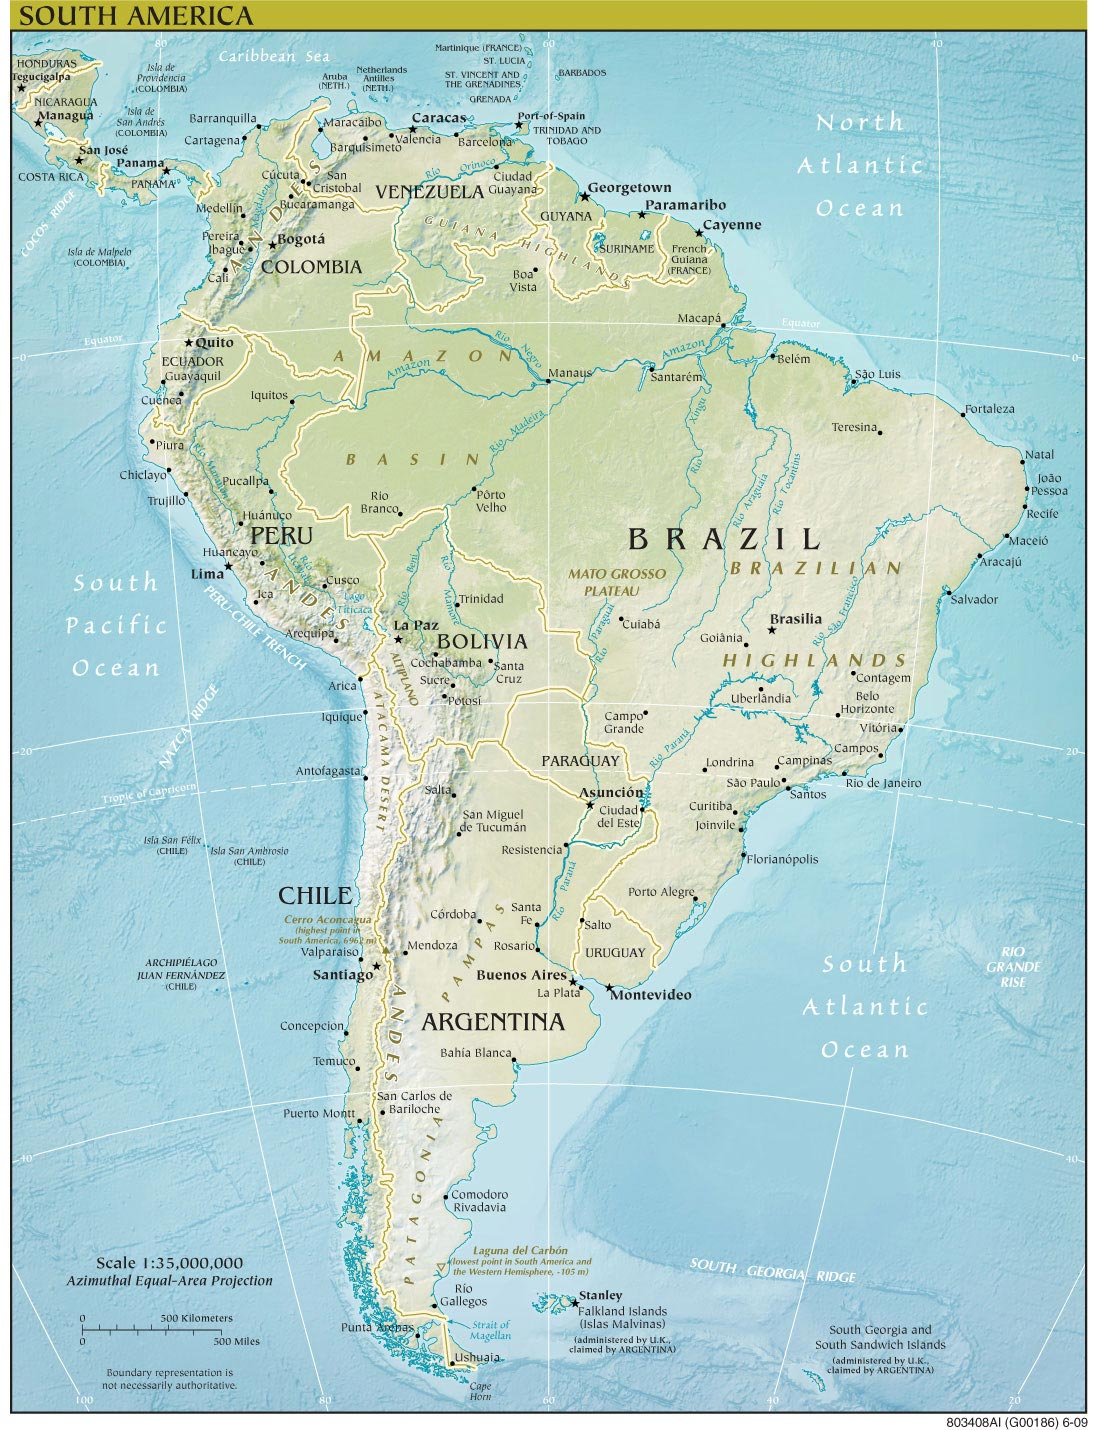 South America Physical Map • Mapsof.net